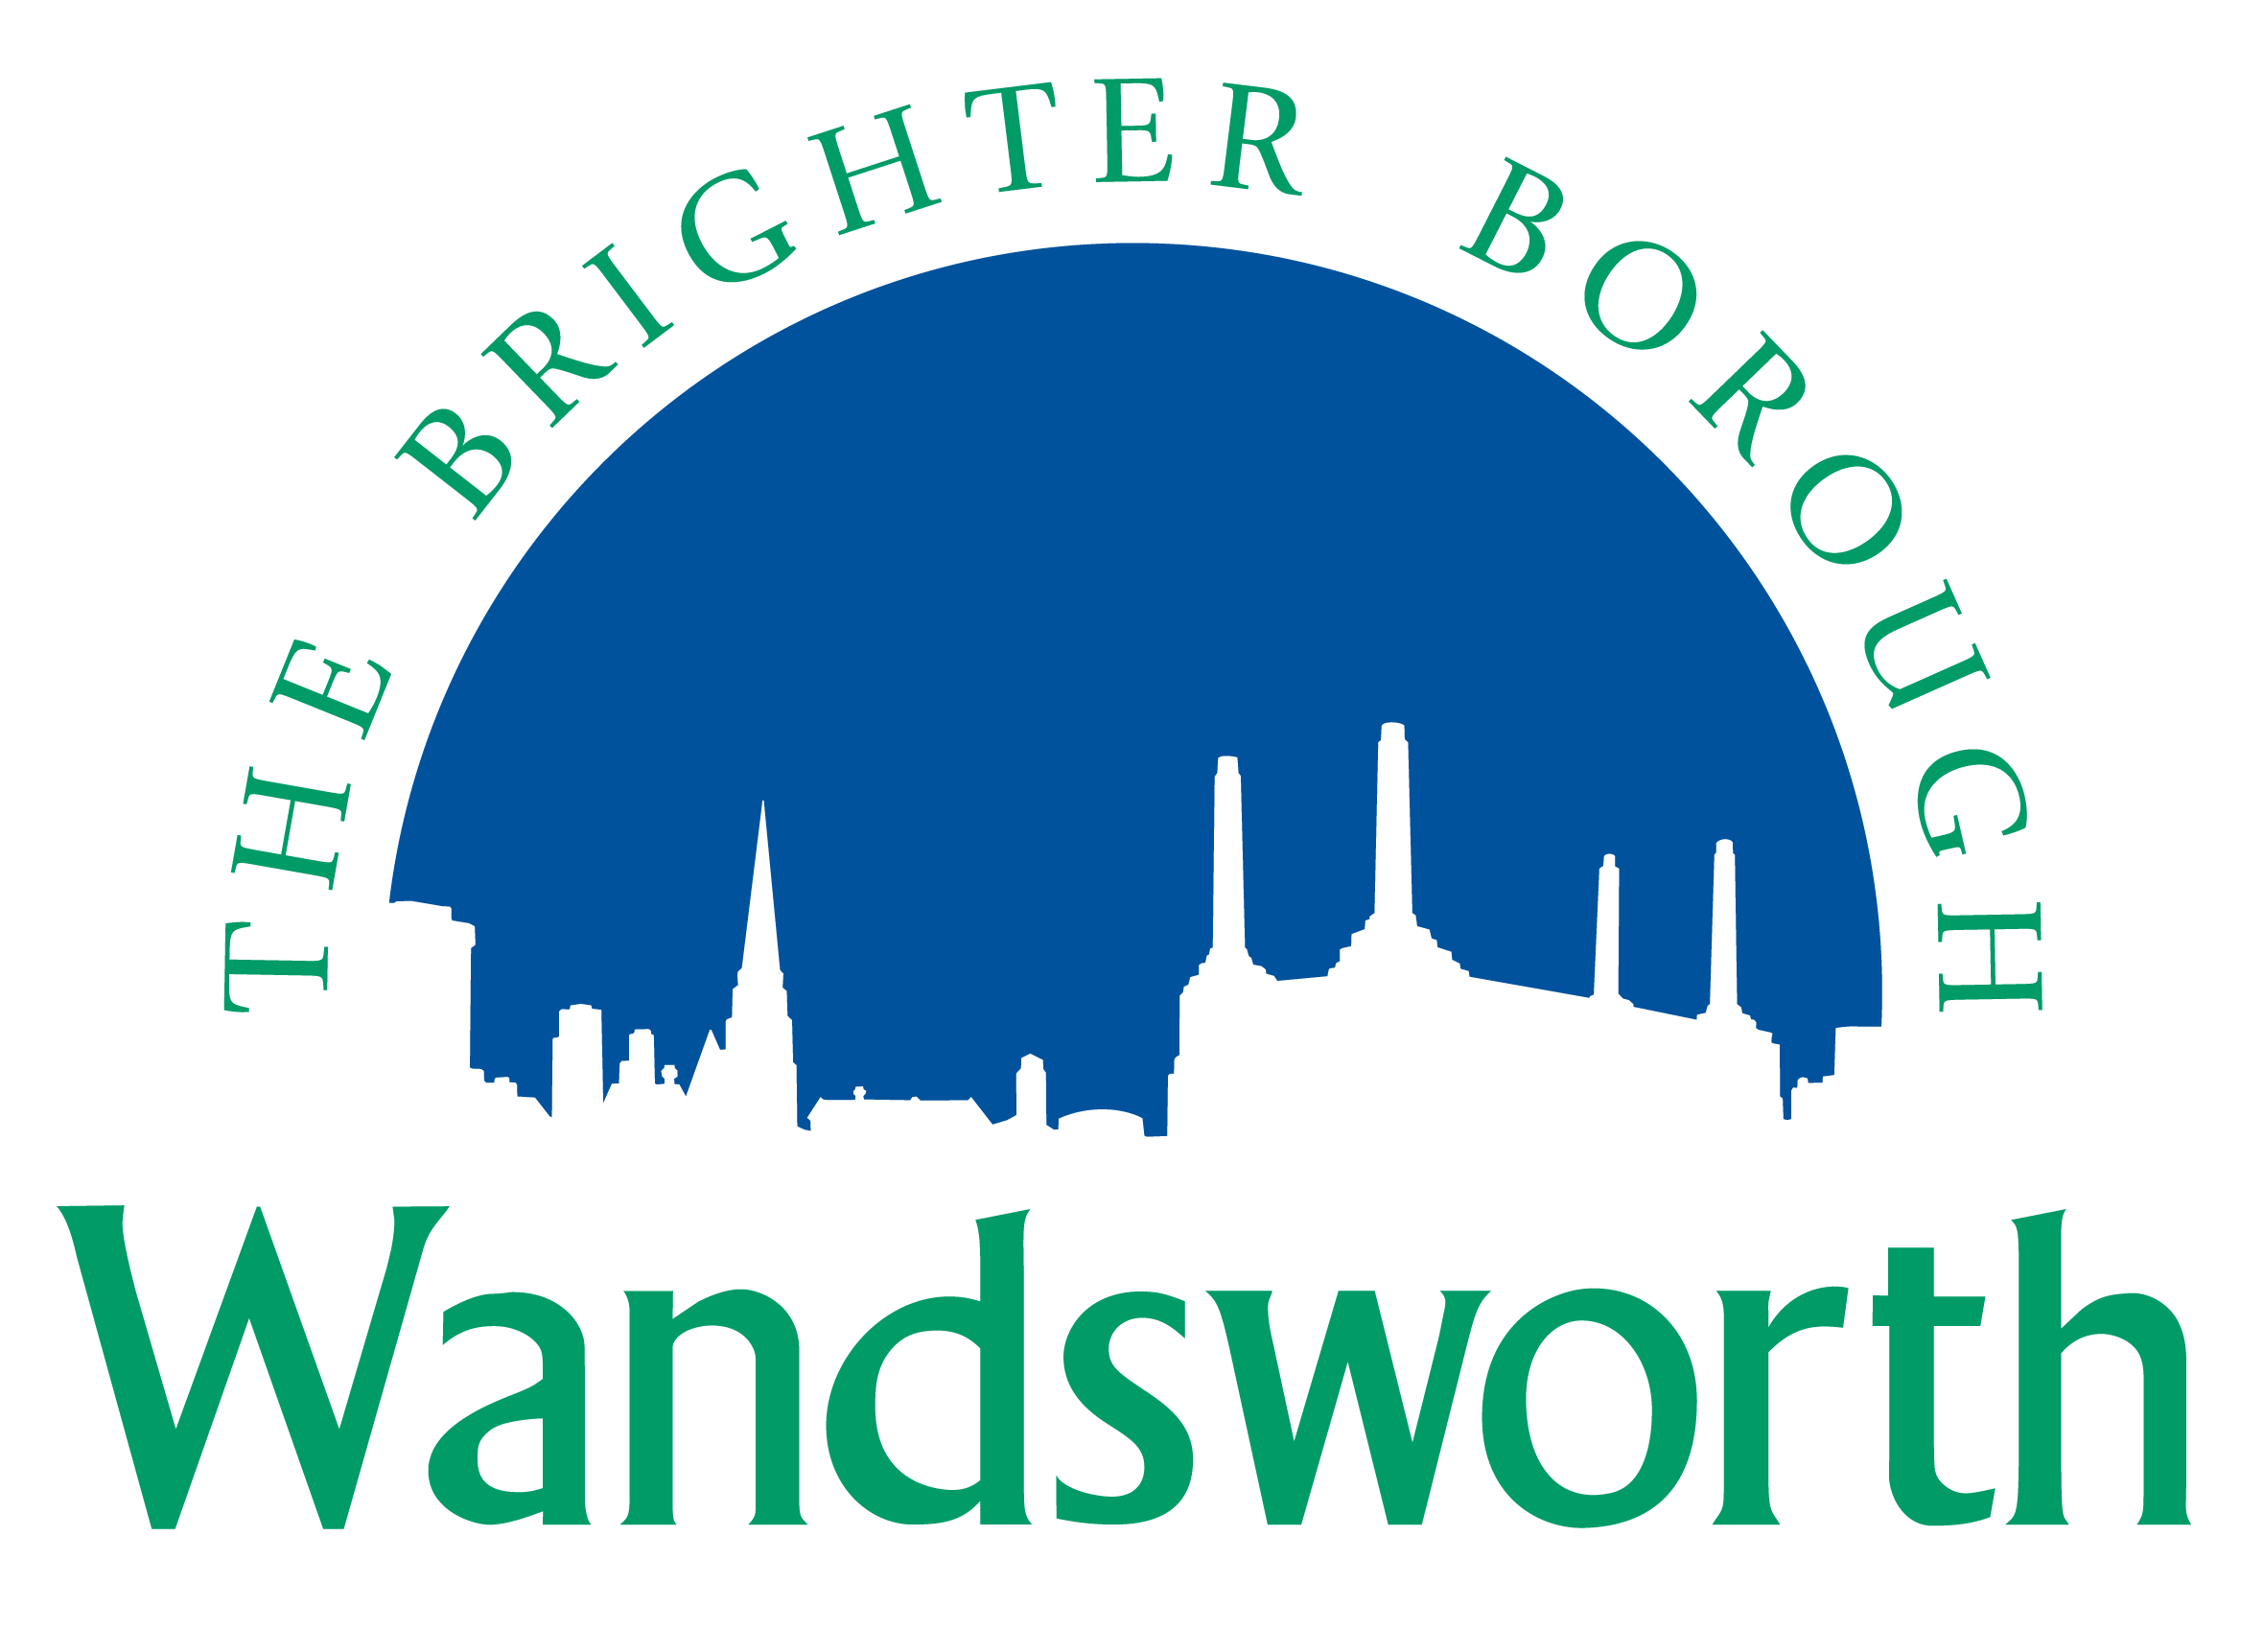 The logo of Wandsworth Council, a past client of The Wrighty Media Agency